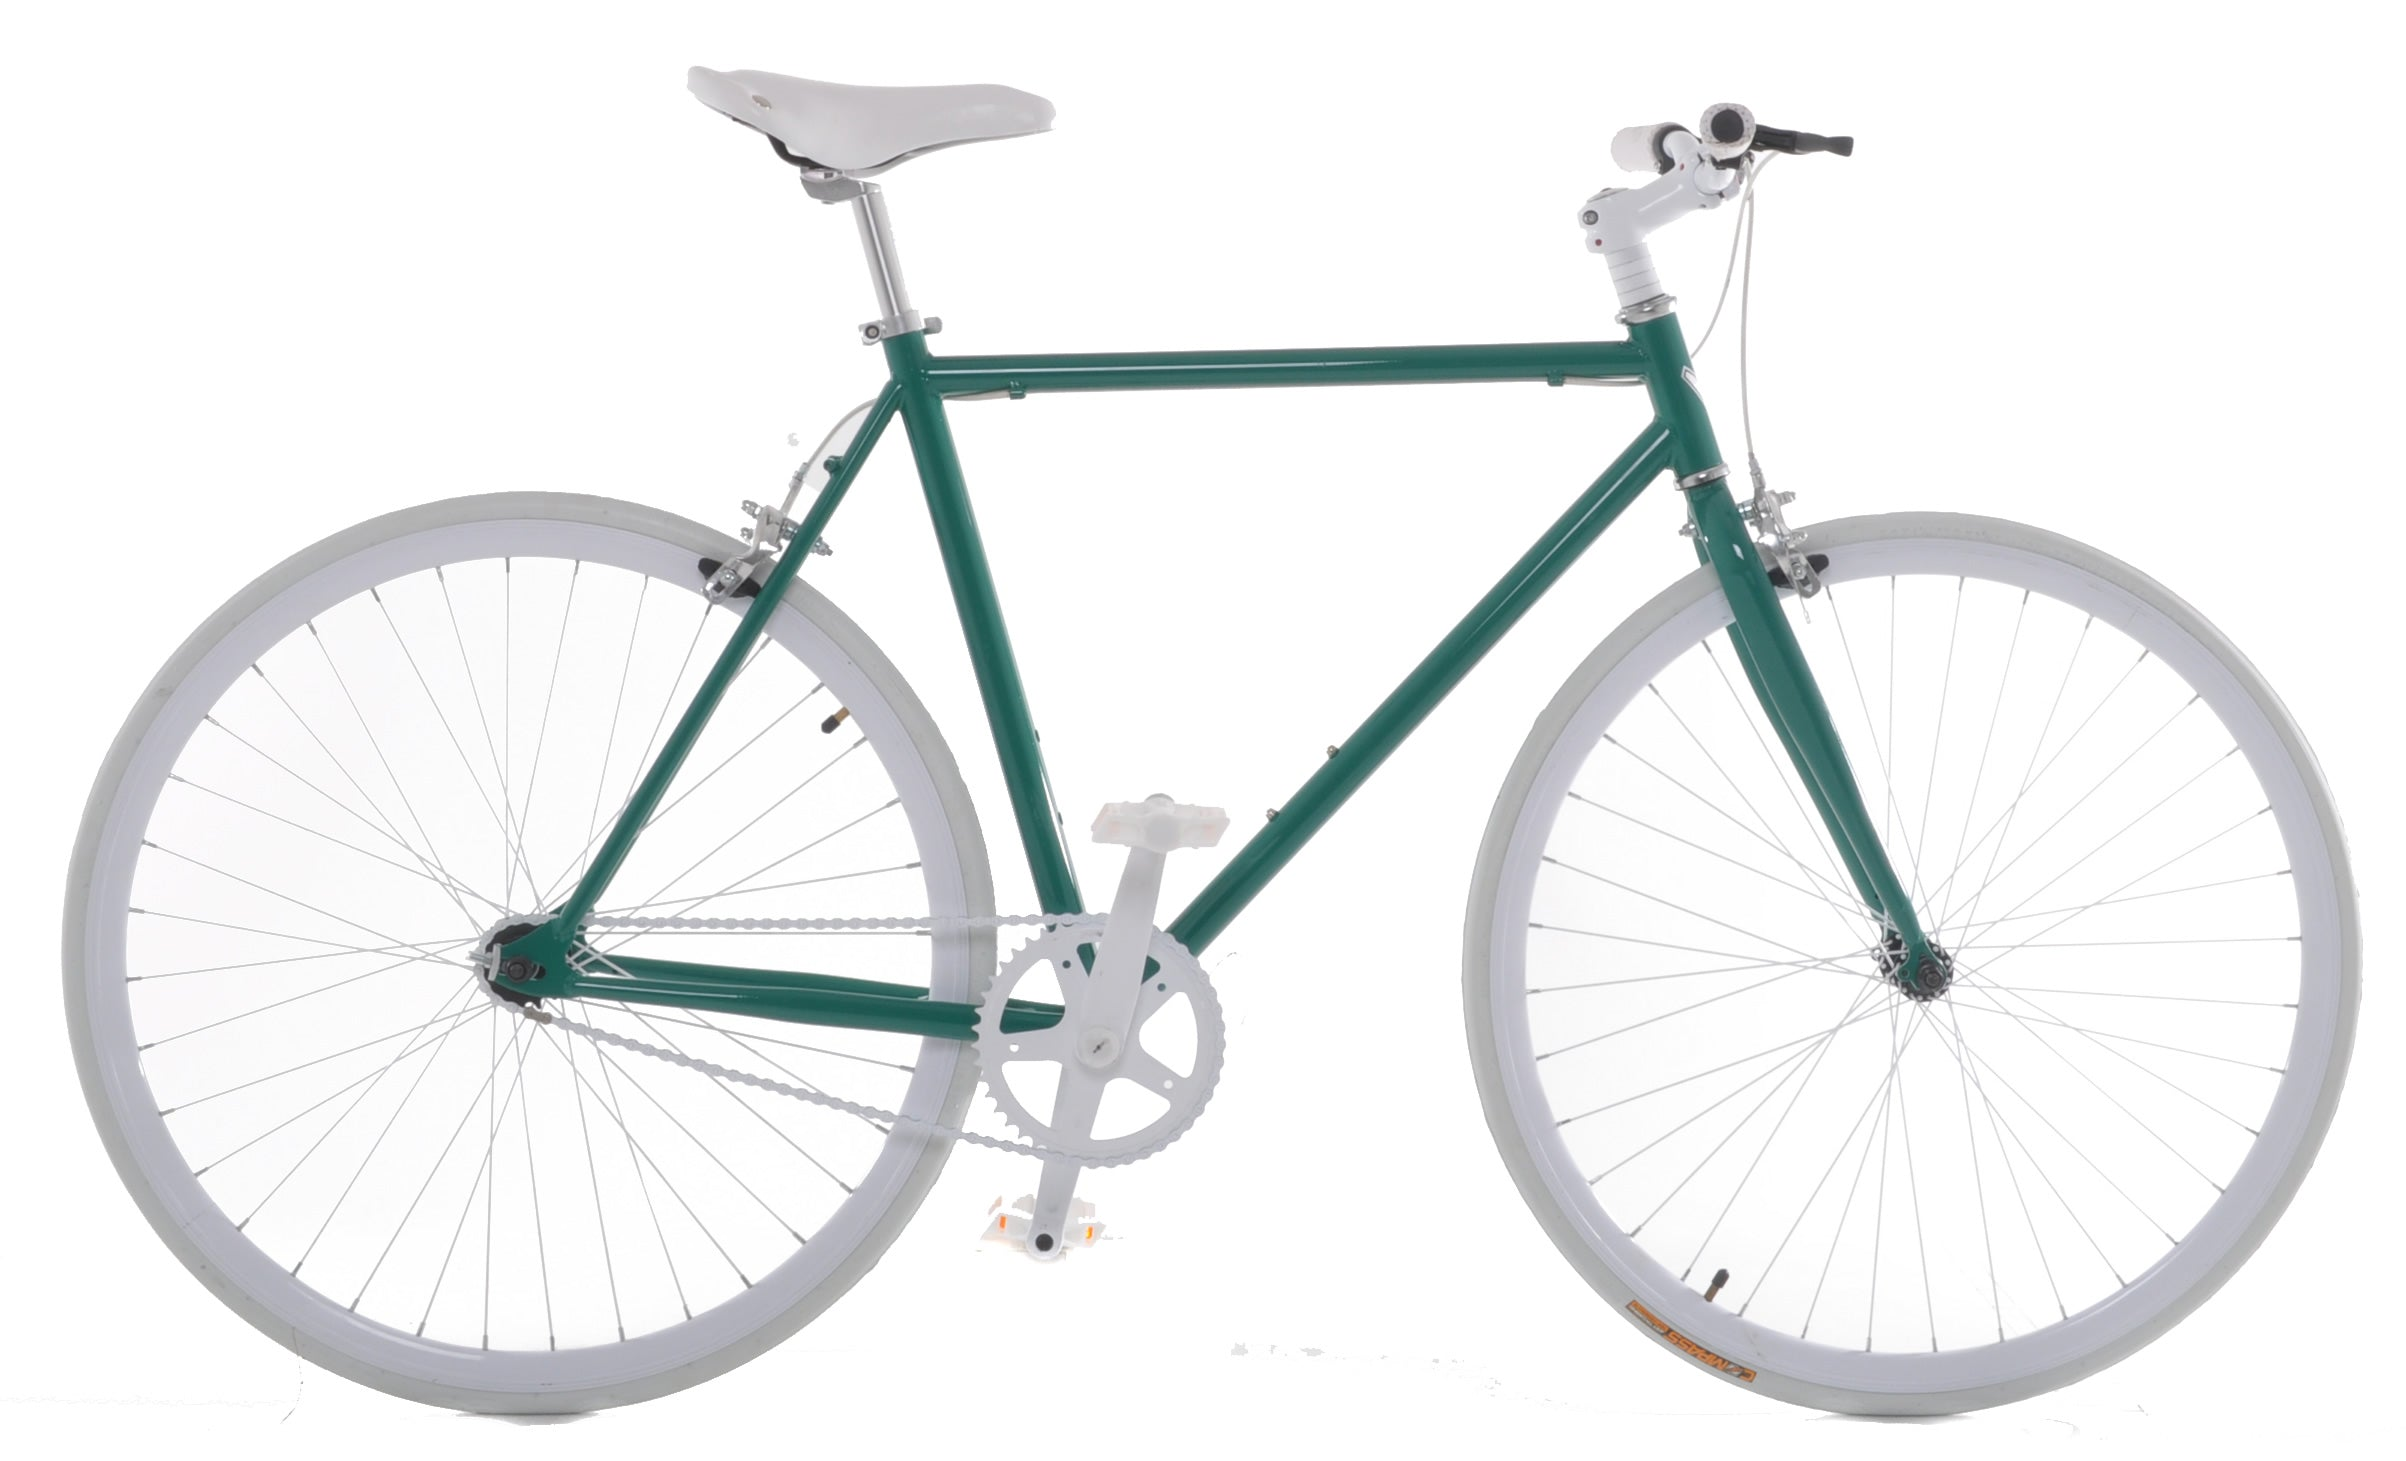 products/700-FIXIE-GRN-WHT__01.jpg_2_5cce6a10-b893-43cd-9be7-6822bc7fa6e0.jpg